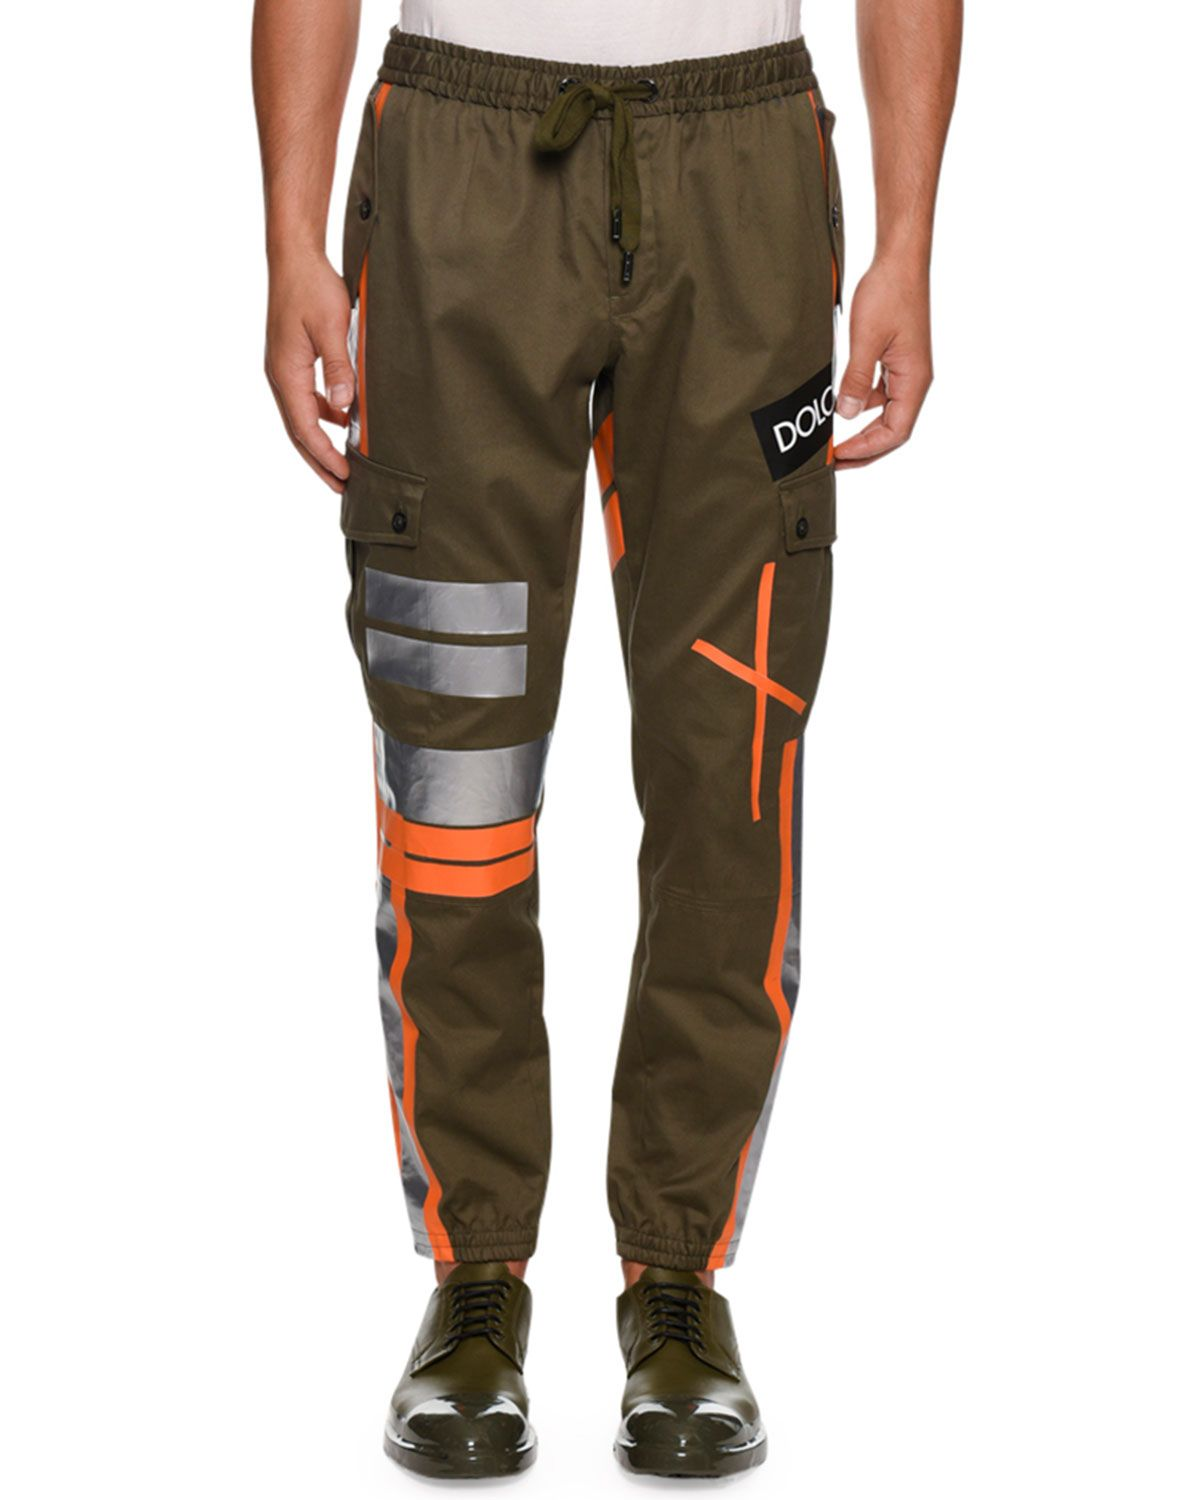 213a60a97117 DOLCE   GABBANA MEN S MILITARY CARGO PANTS.  dolcegabbana  cloth ...